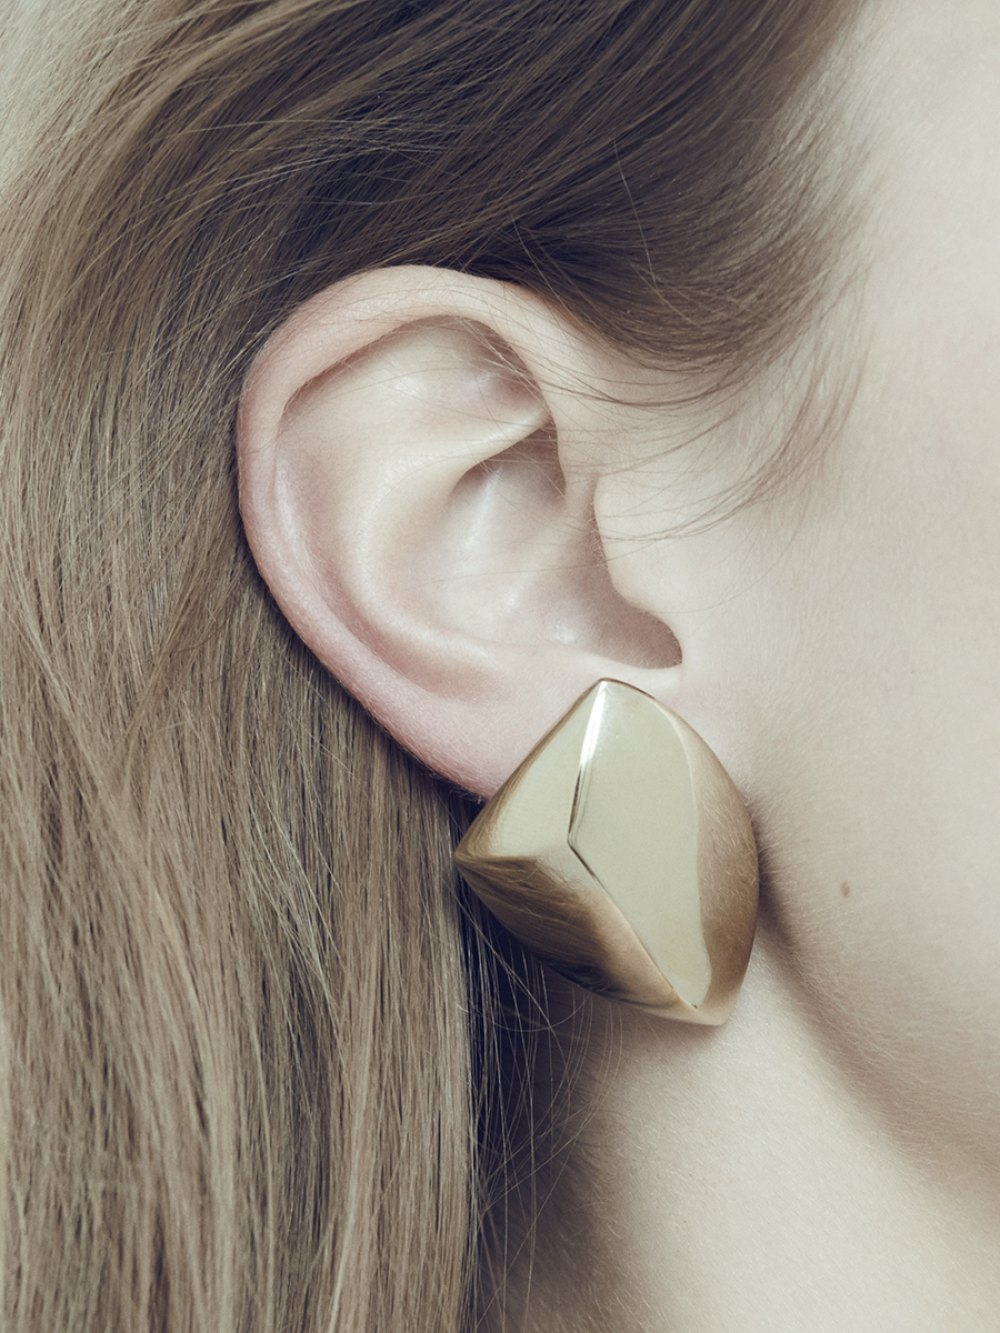 WEARABLE ARCHITECTURE  EARRINGS IN GOLD  BRASS CONTEMPORARY JEWELRY